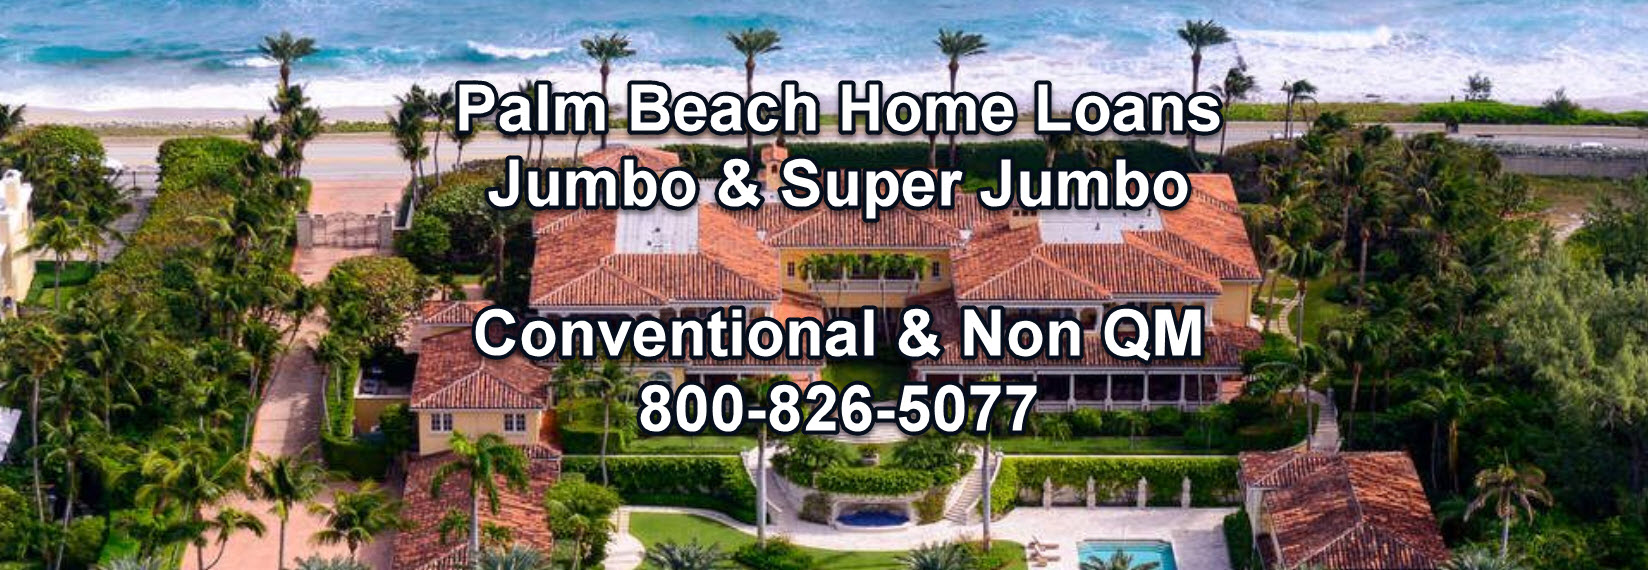 best mortgage rates in palm beach